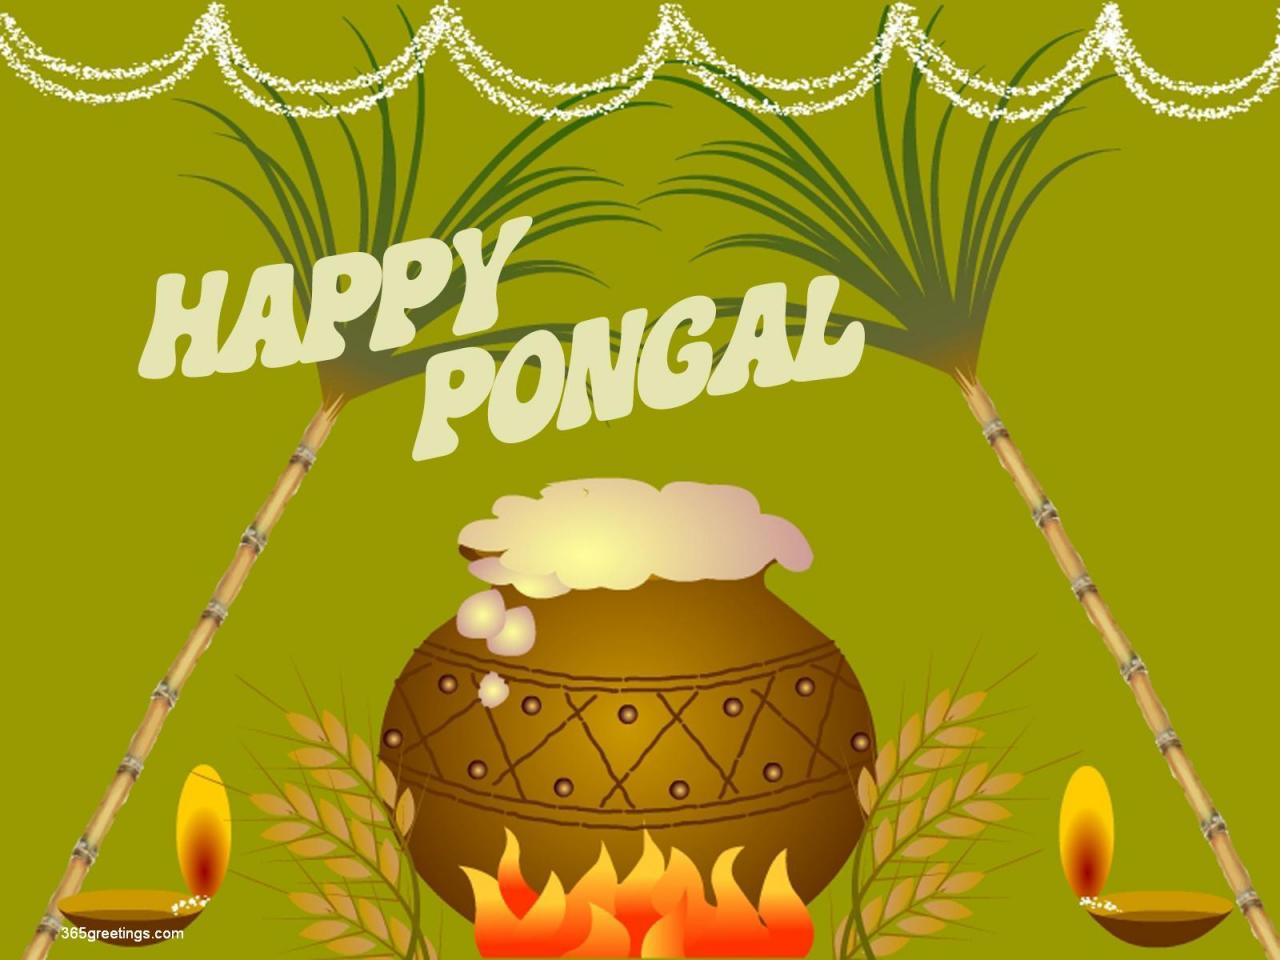 Pongal Festival Essay Pongal Greetings In English And Tamil Tamil